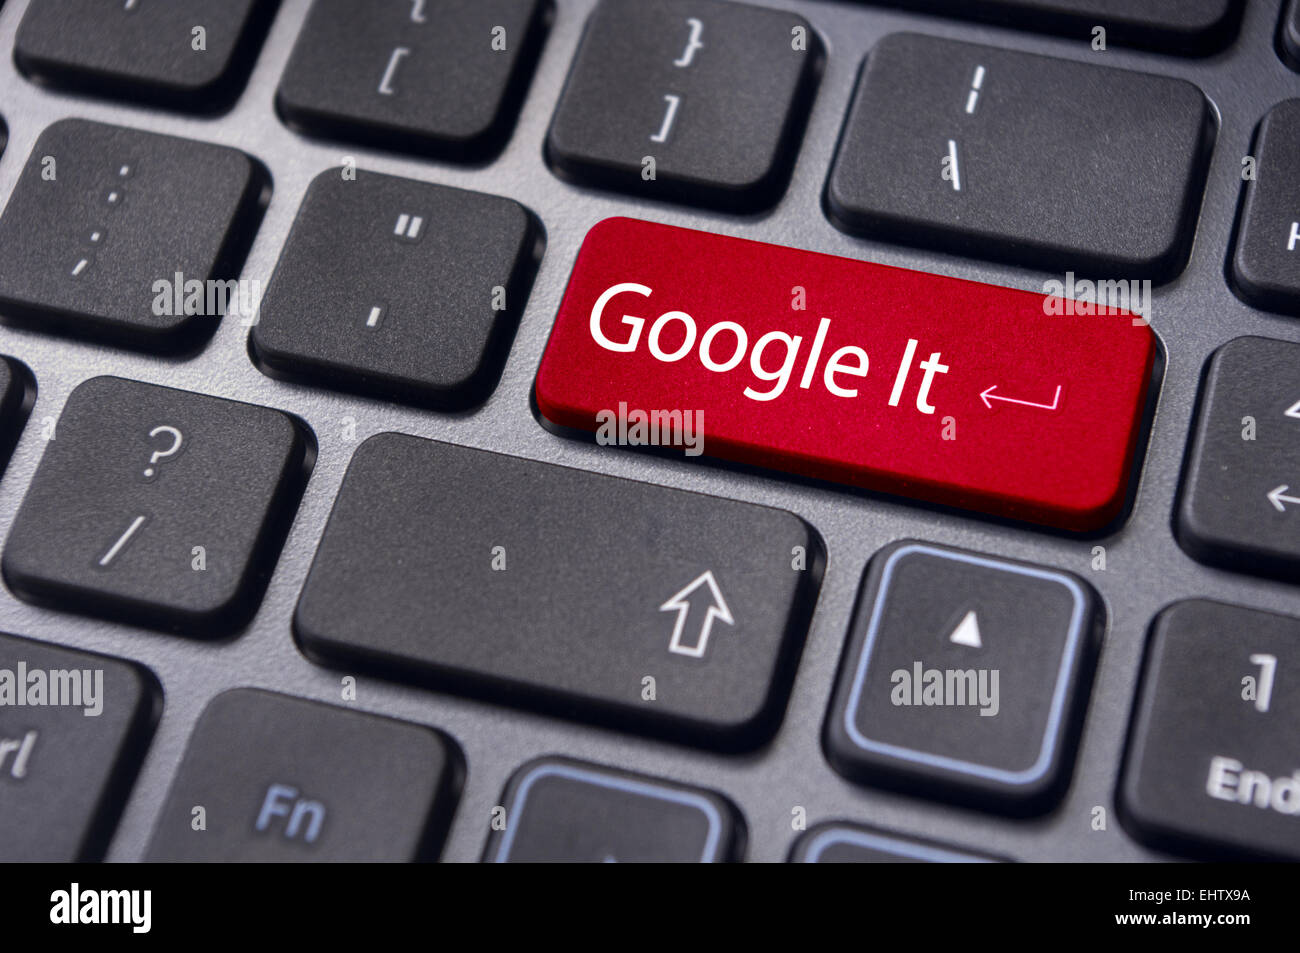 google, internet search concepts - Stock Image